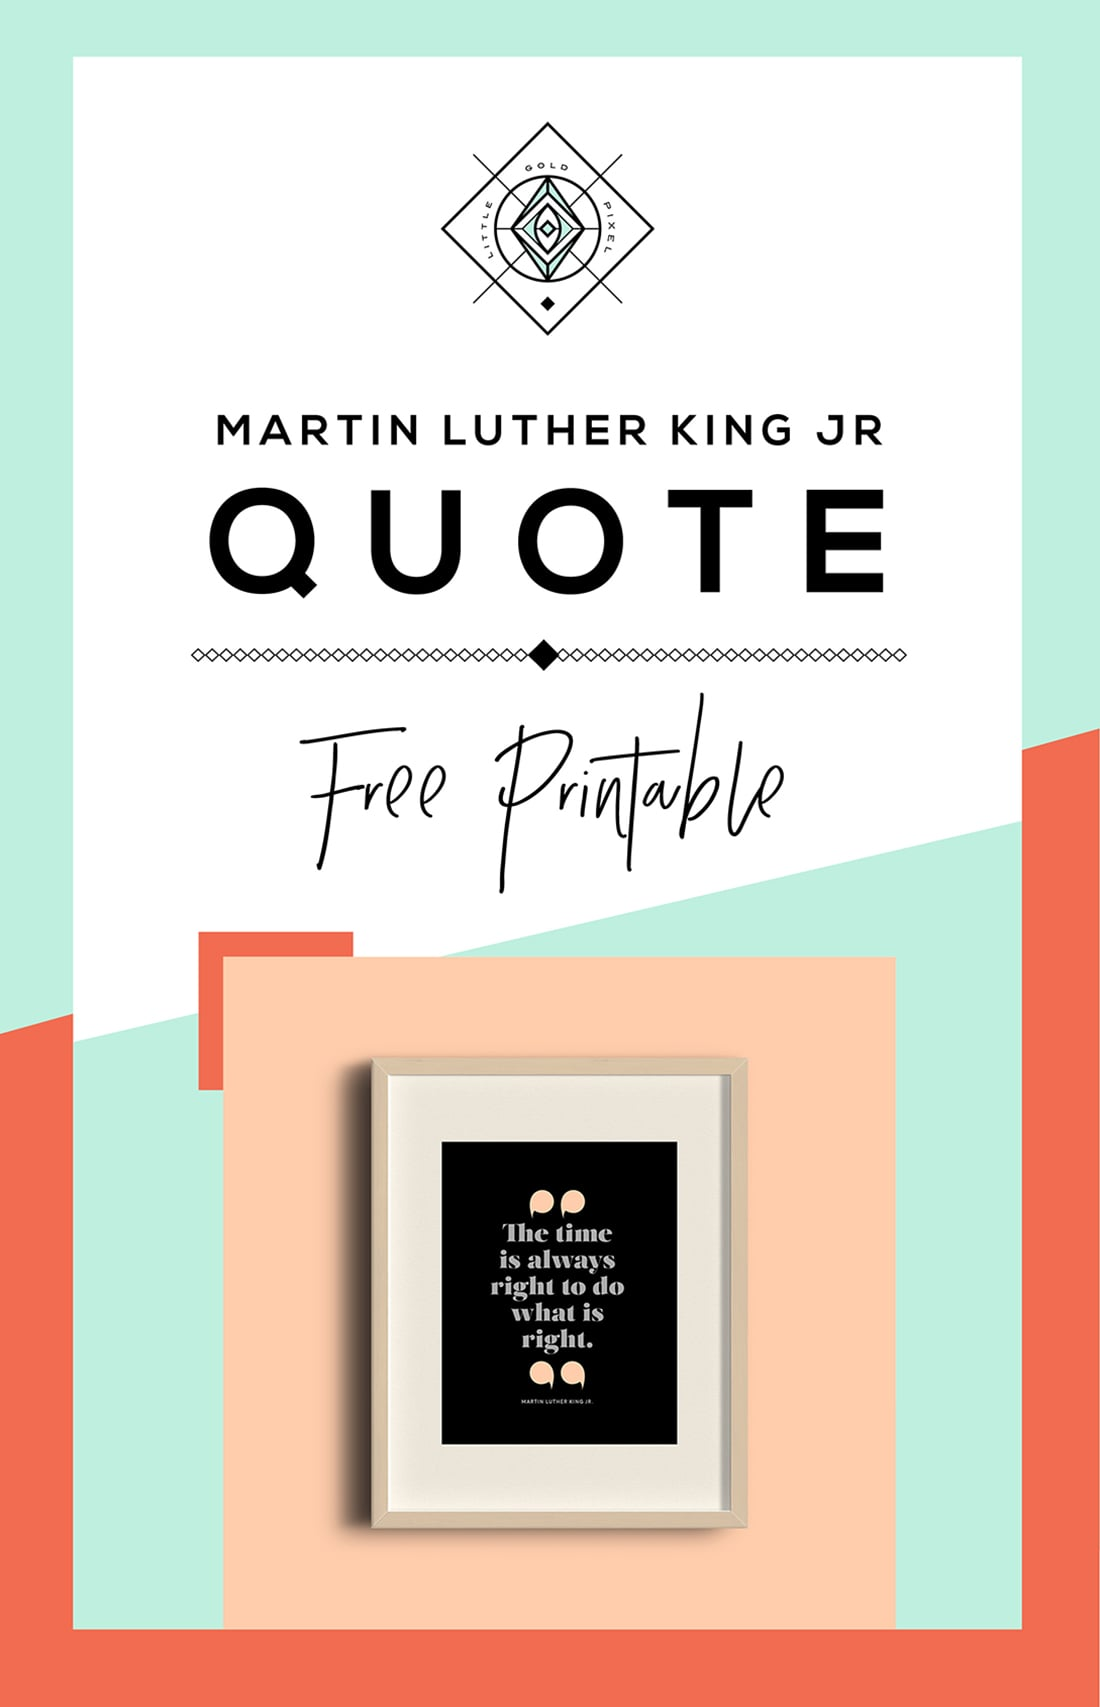 Martin Luther King Jr. Quote • Free Printable • Little Gold Pixel